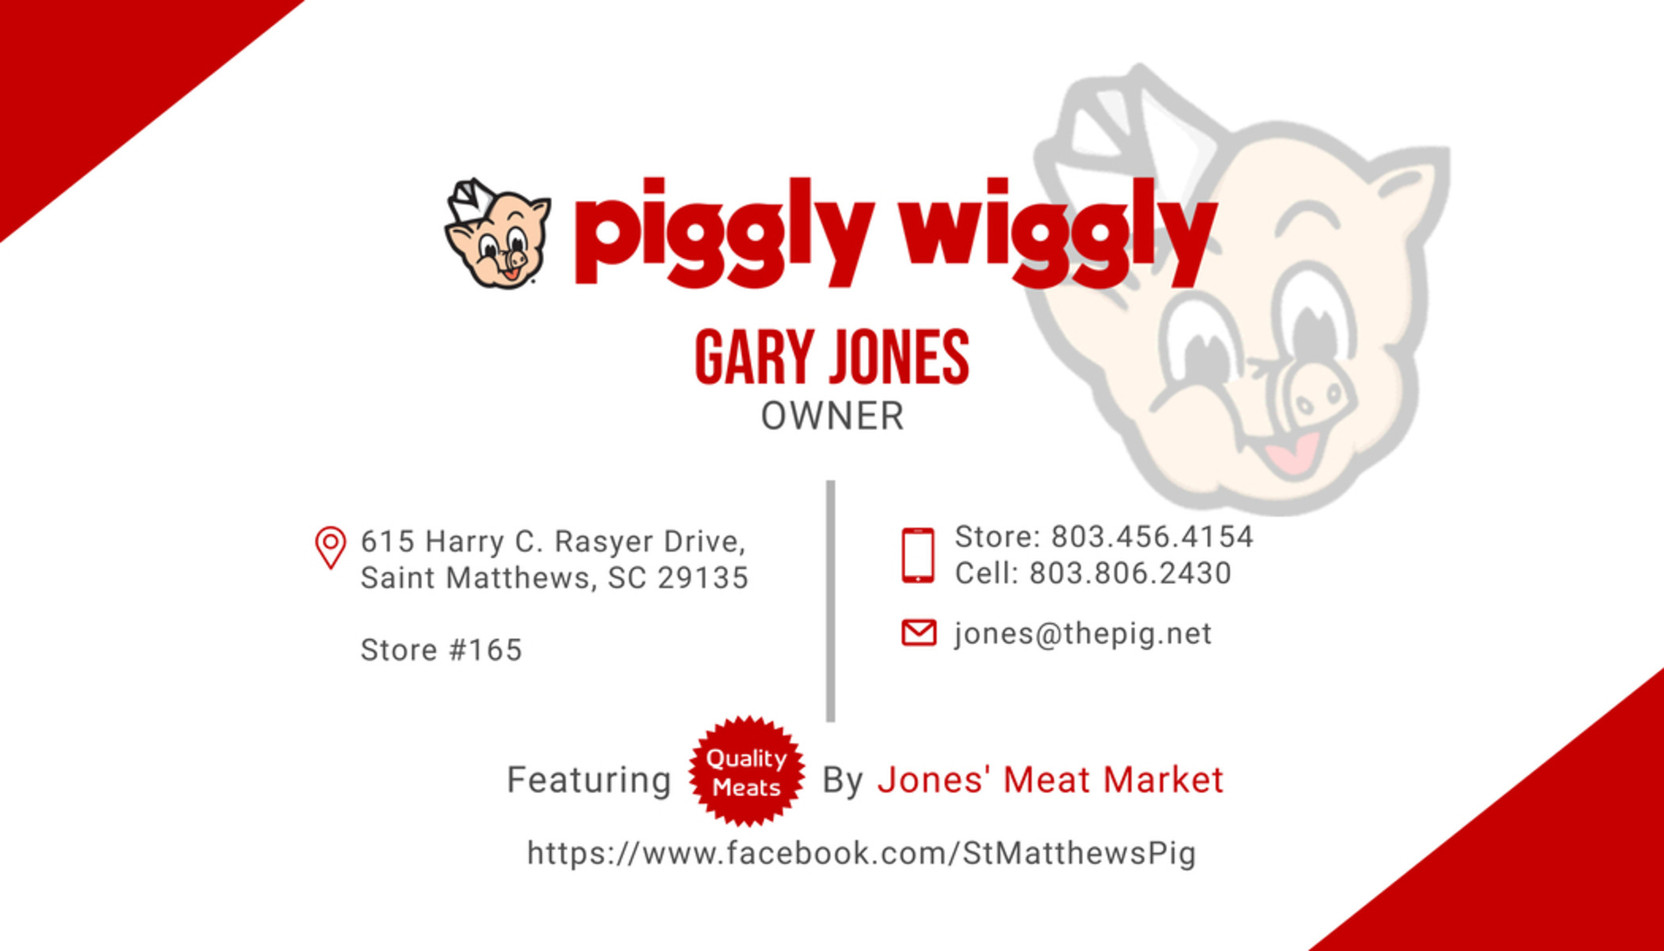 Piggly Wiggly Business Cards (2).jpg